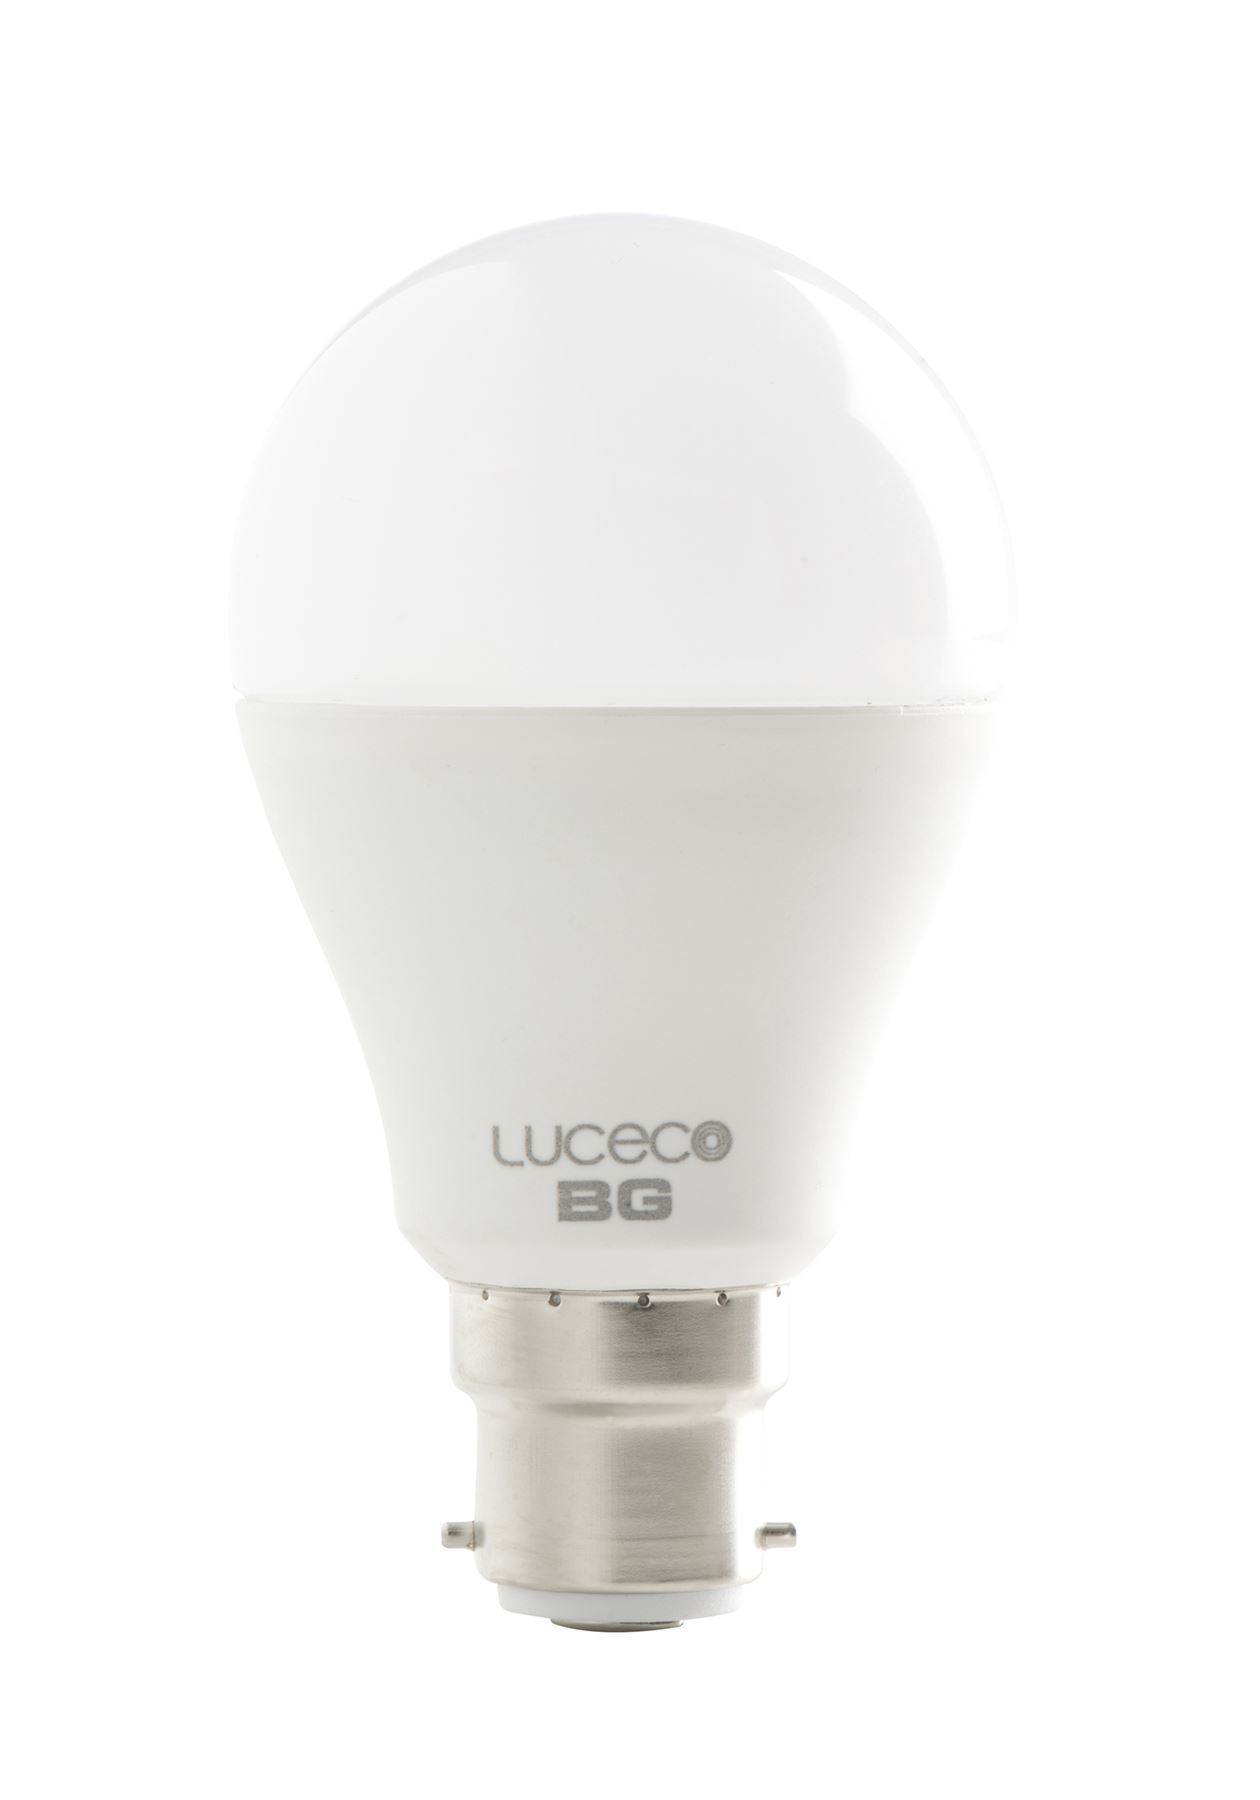 Luceco A60 Frosted Classic Led Light Bulbs Lamps Energy Saving Non Dimmable Ebay